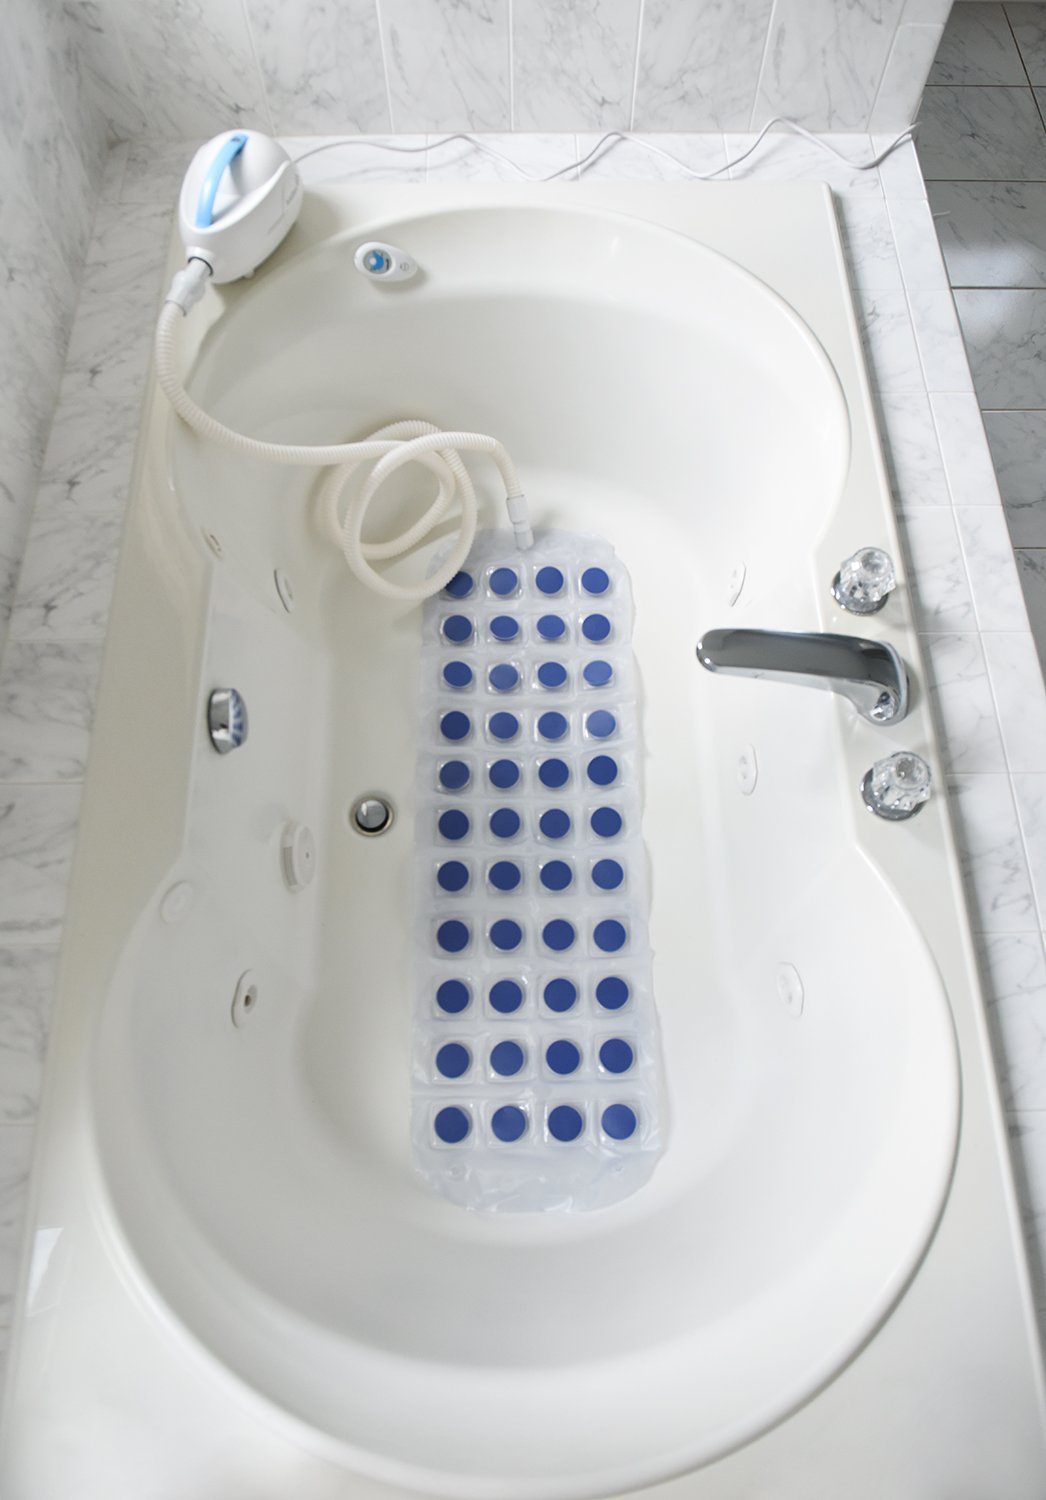 Amazon.com : Ivation Waterproof Bubble Bath Tub Body Spa Massage - Mat with  Air Hose - Massaging Bubbles for Relaxing Bath : Beauty